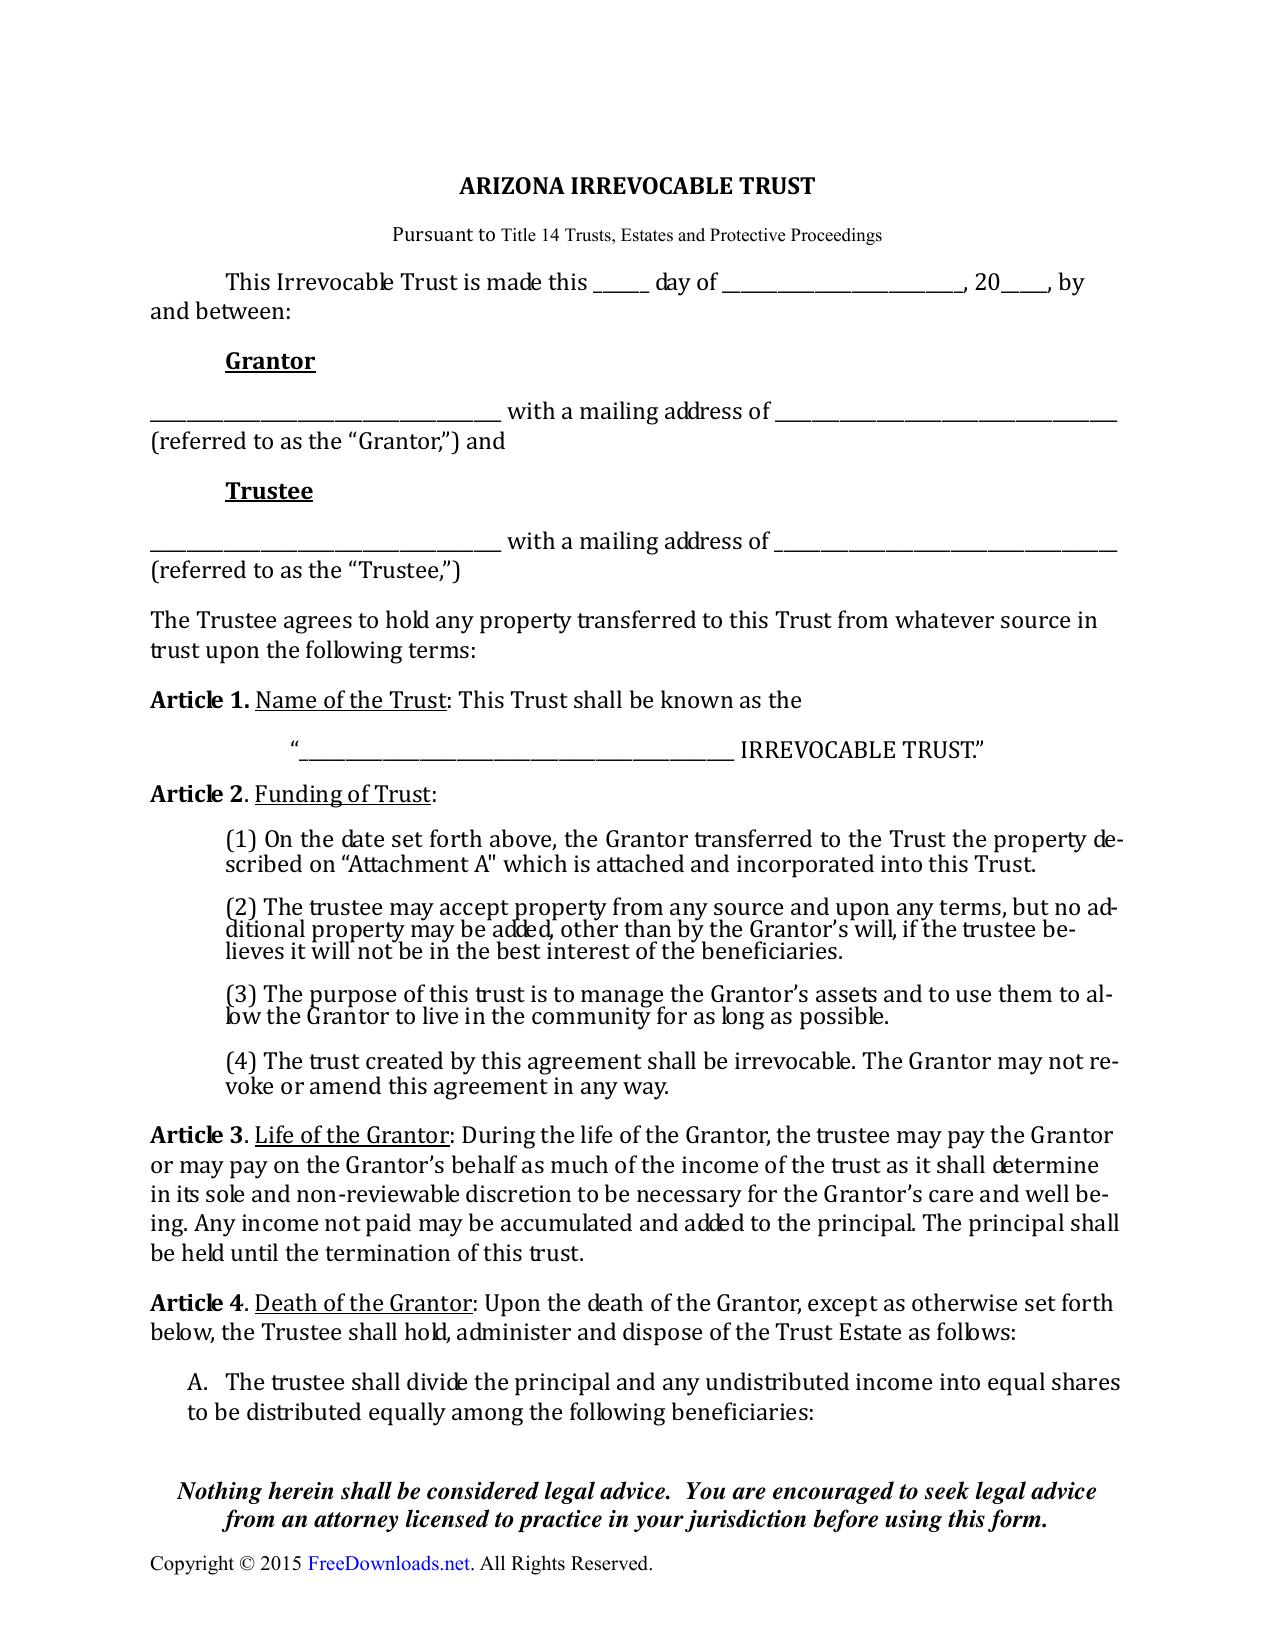 Irrevocable Trust Document Example